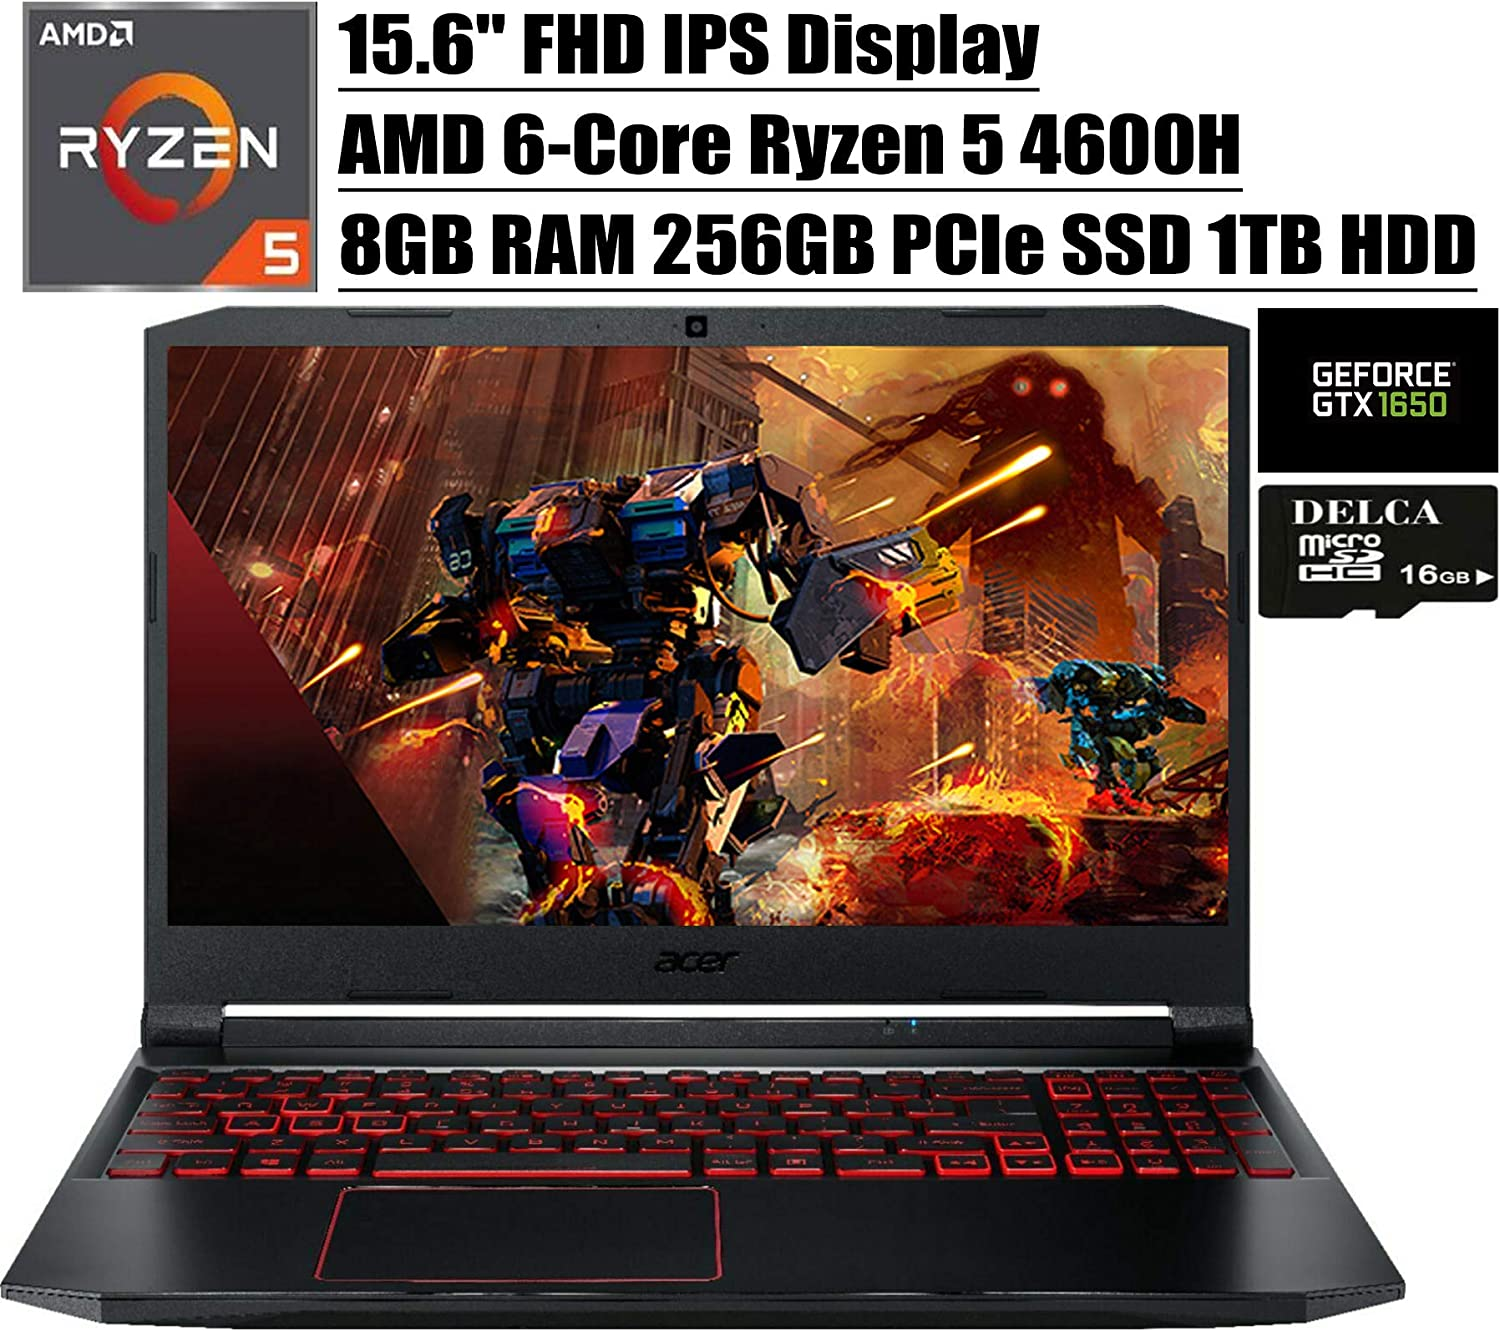 "Acer Nitro 5 15 2020 Premium Gaming Laptop I 15.6"" FHD IPS Display I AMD Hexa-Core Ryzen 5 4600H (>I7-9750H) I 8GB DDR4 256GB PCIe SSD 1TB HDD I 4GB GTX 1650 Backlit Win 10 + Delca 16GB Micro SD Card"